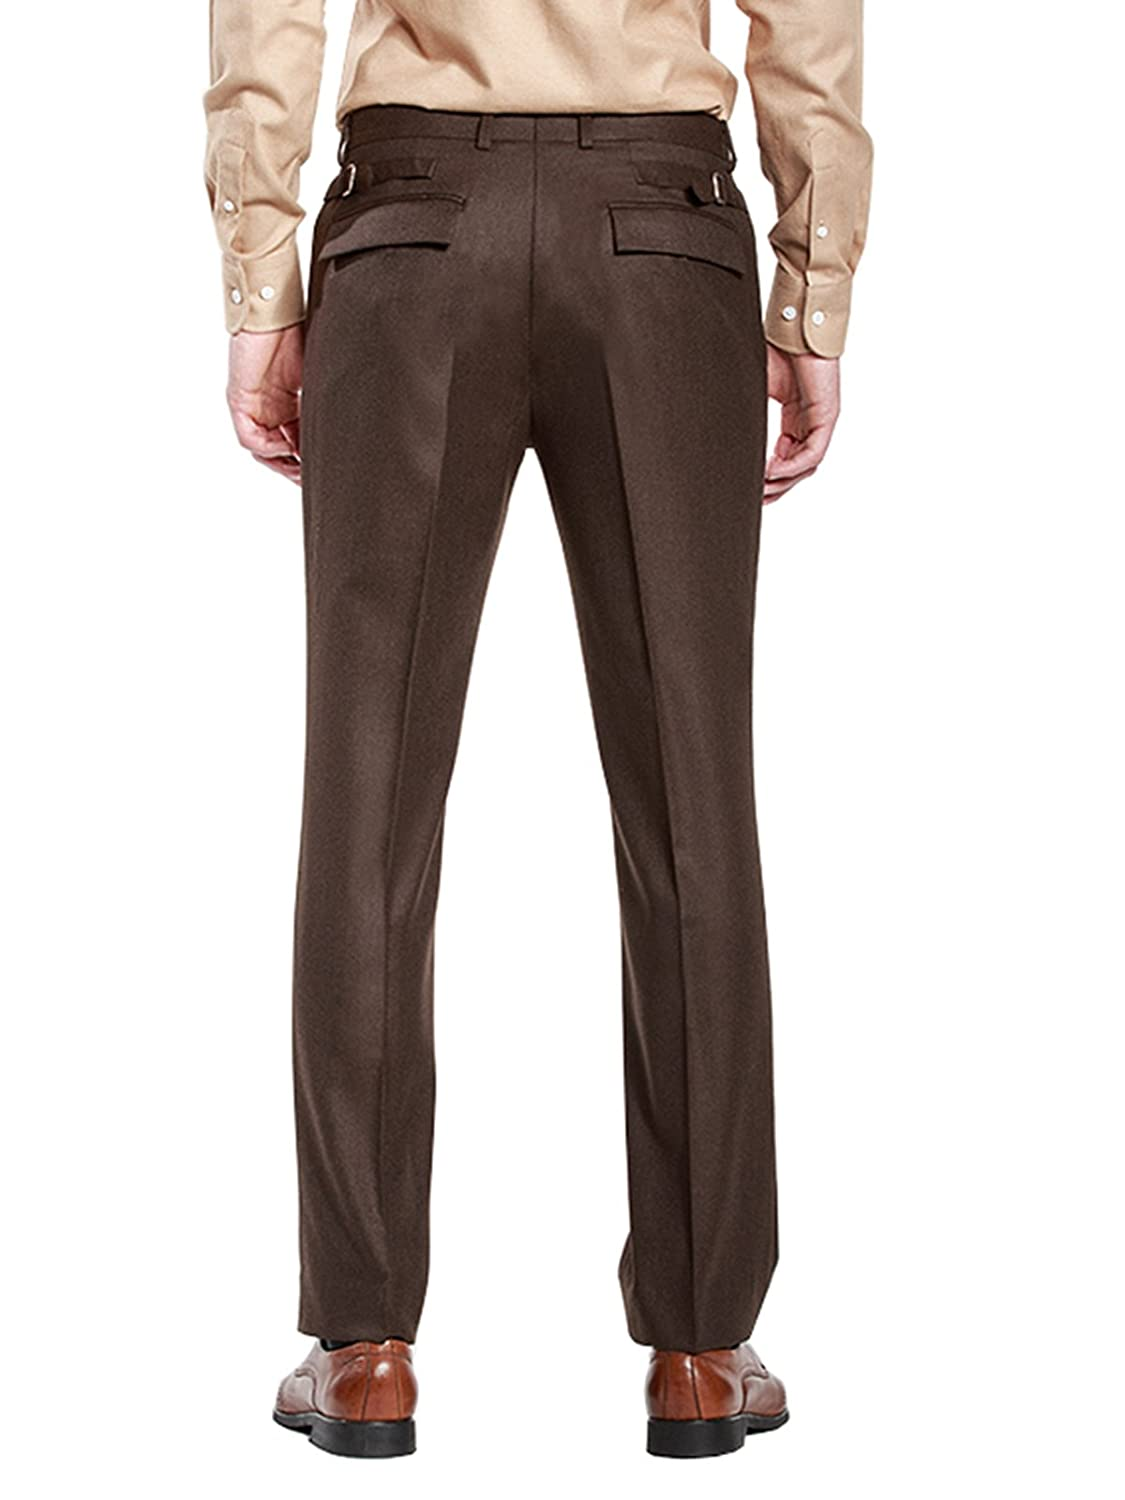 HBDesign Mens Outdoor Ball Slim Fit Flat Straight Brown Iron Free Pants